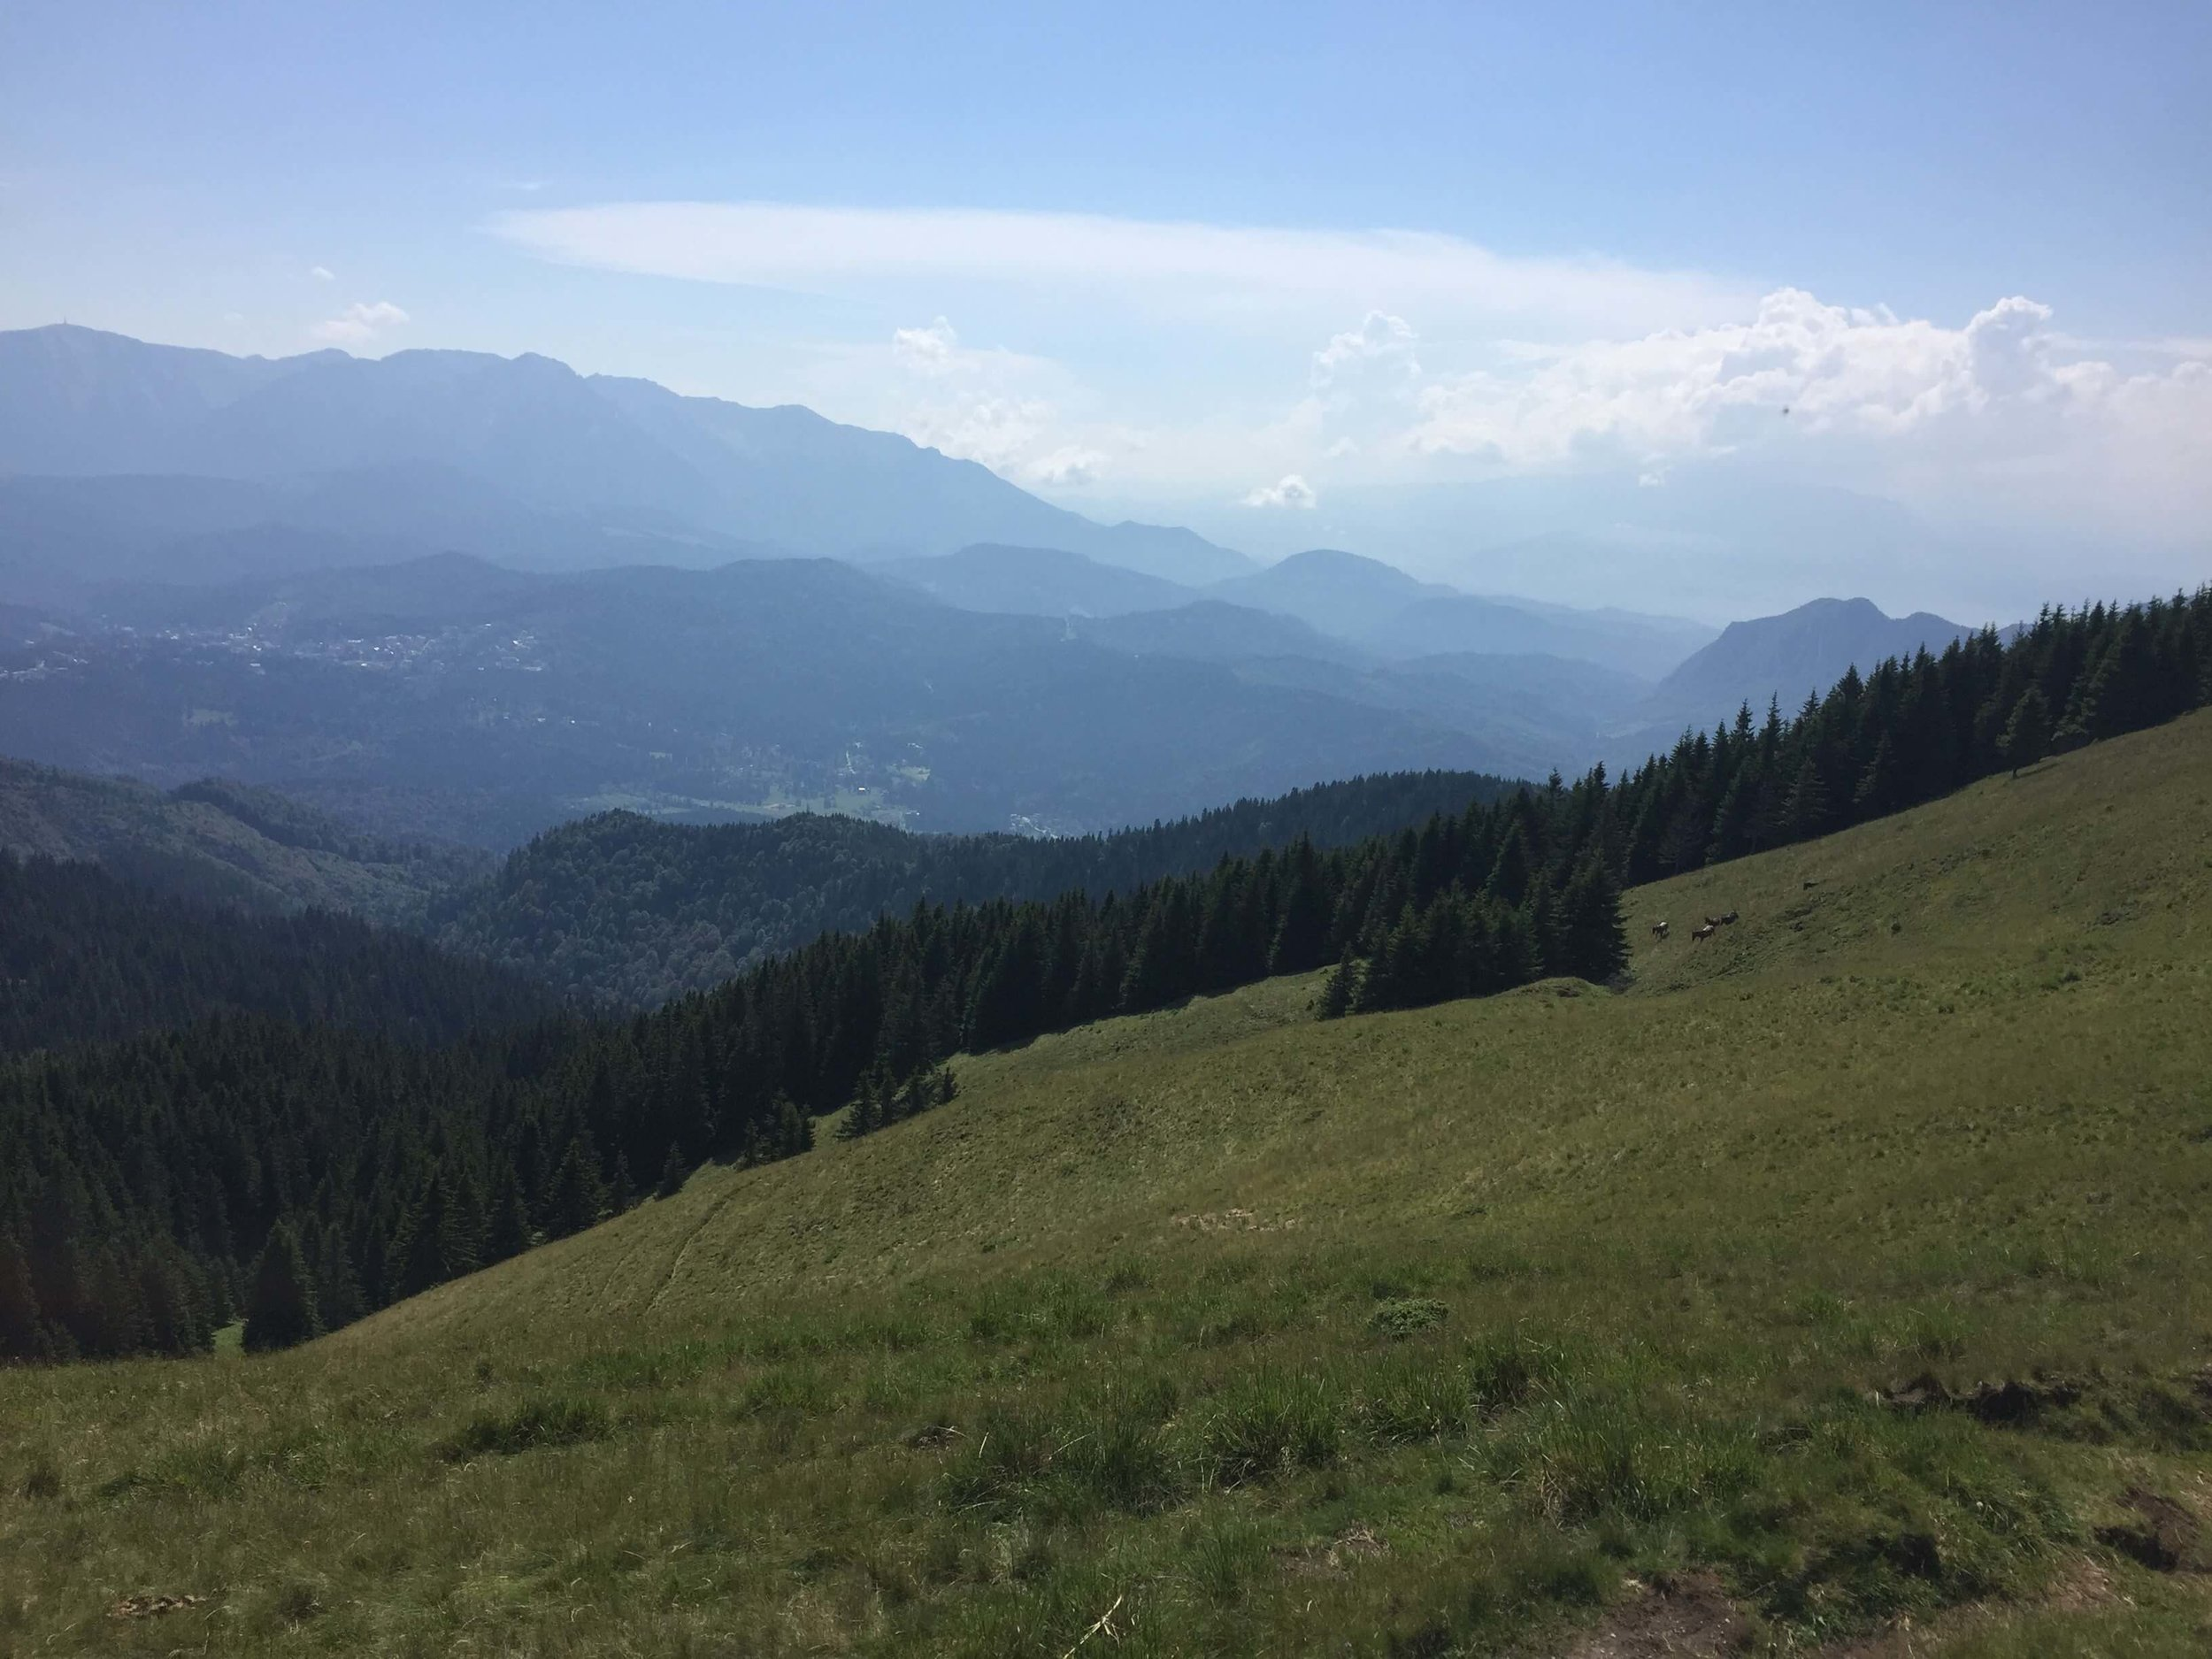 Taking in these amazing views from the hike of to Piatra Mare after getting through Sapte Scari.